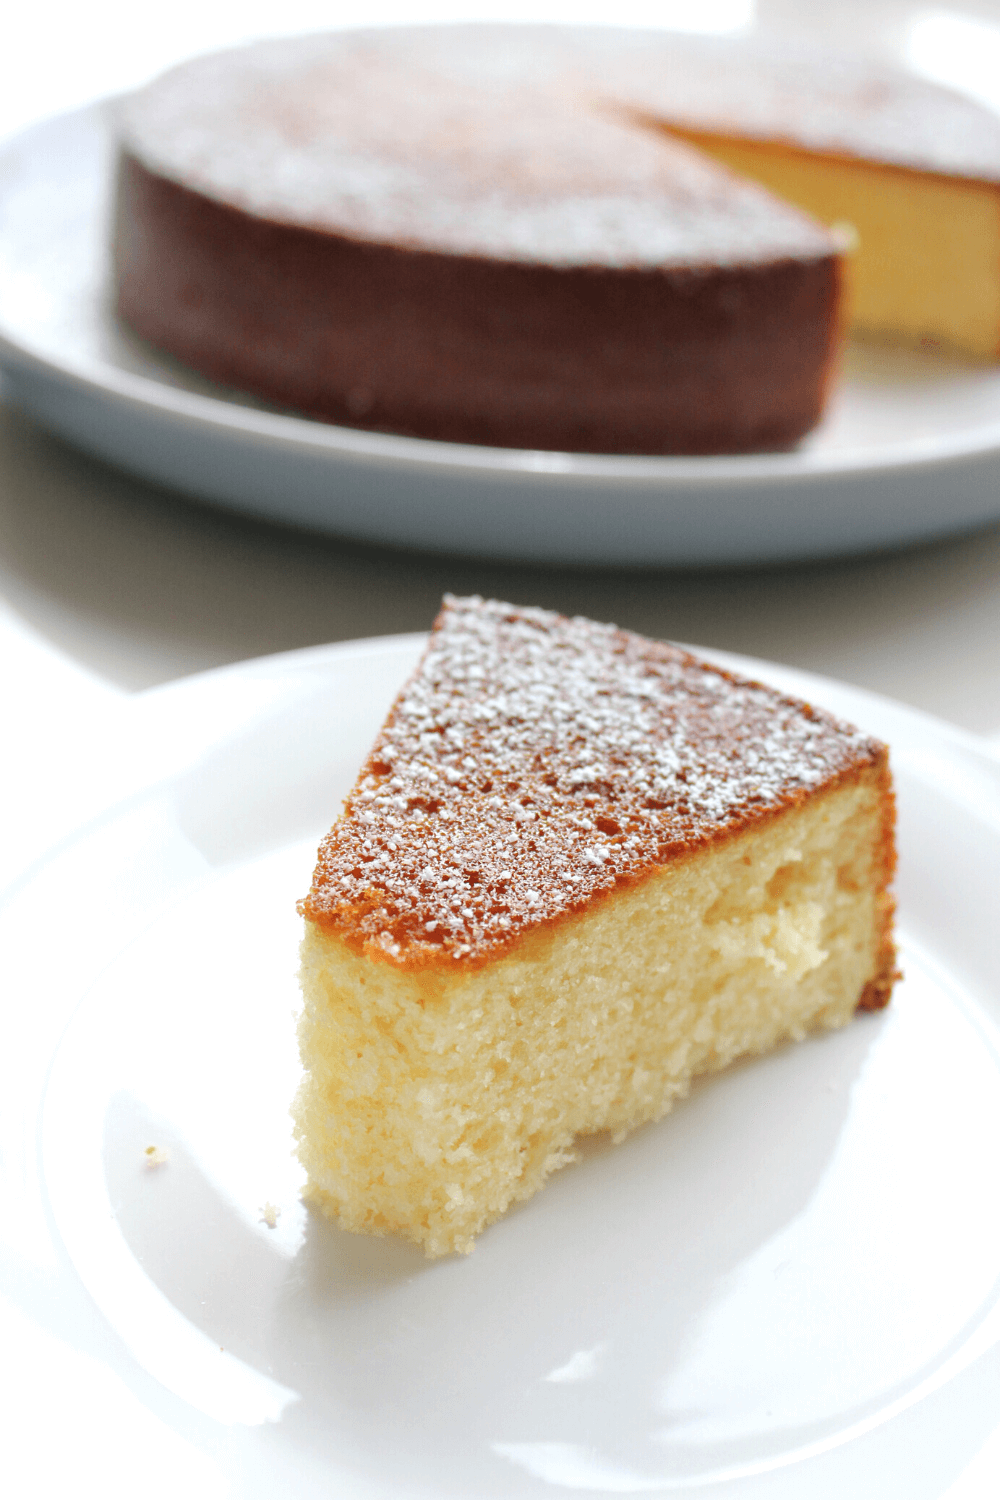 Nothing beats a dessert made using sweetened condensed milk.  There is something about the sweet, sticky ingredient that makes everything taste better.  This condensed milk cake is no exception.  It's sweet, dense and makes the perfect afternoon tea treat.